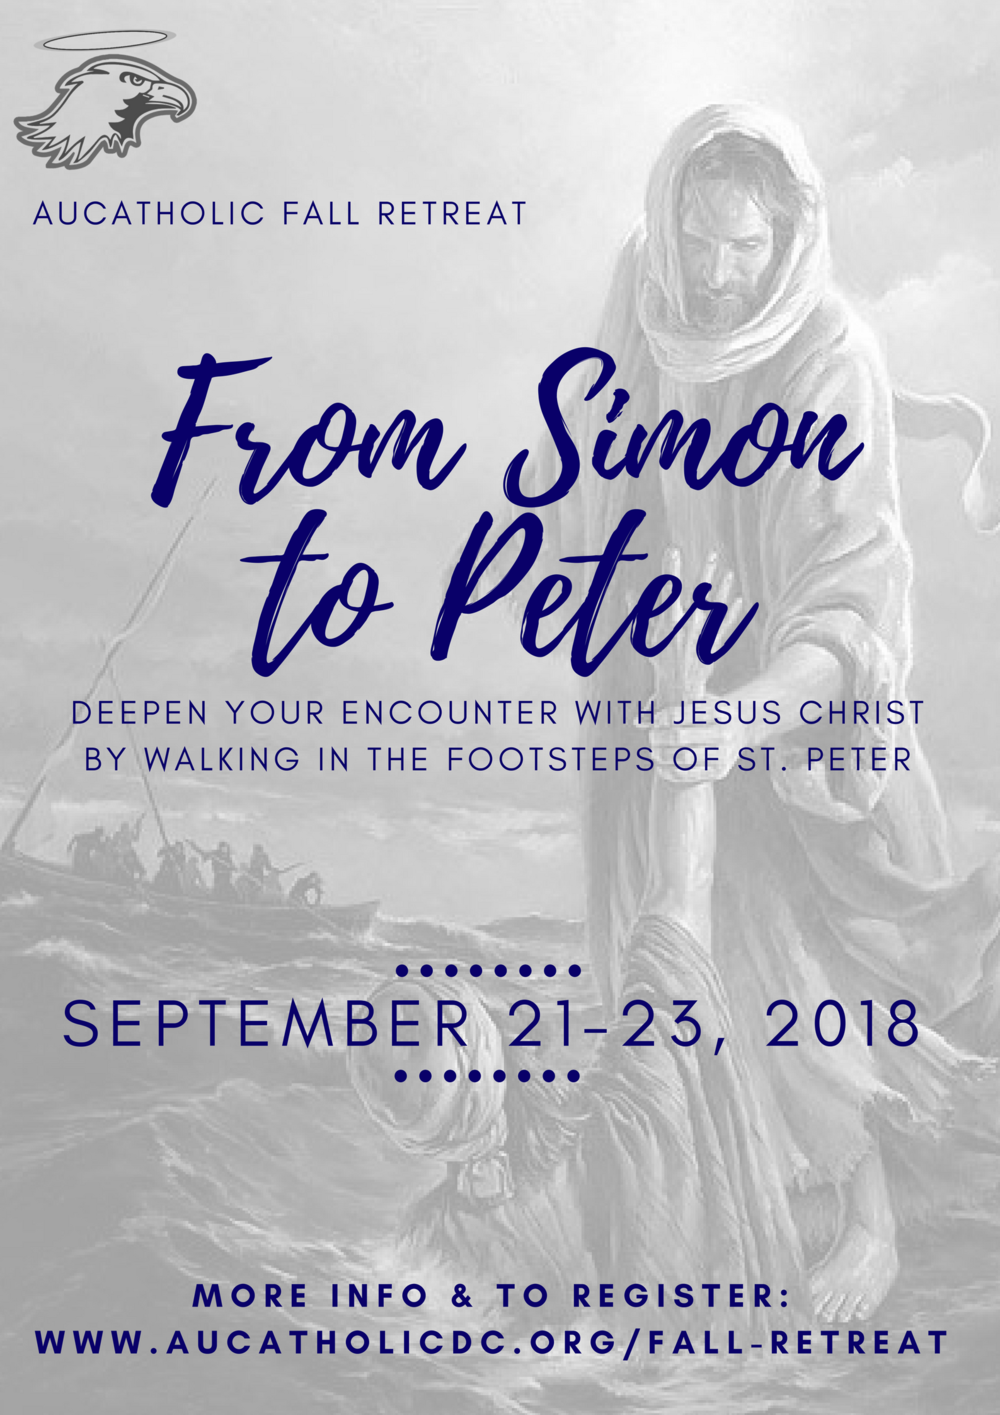 AUCatholic Fall 2018 Retreat Image